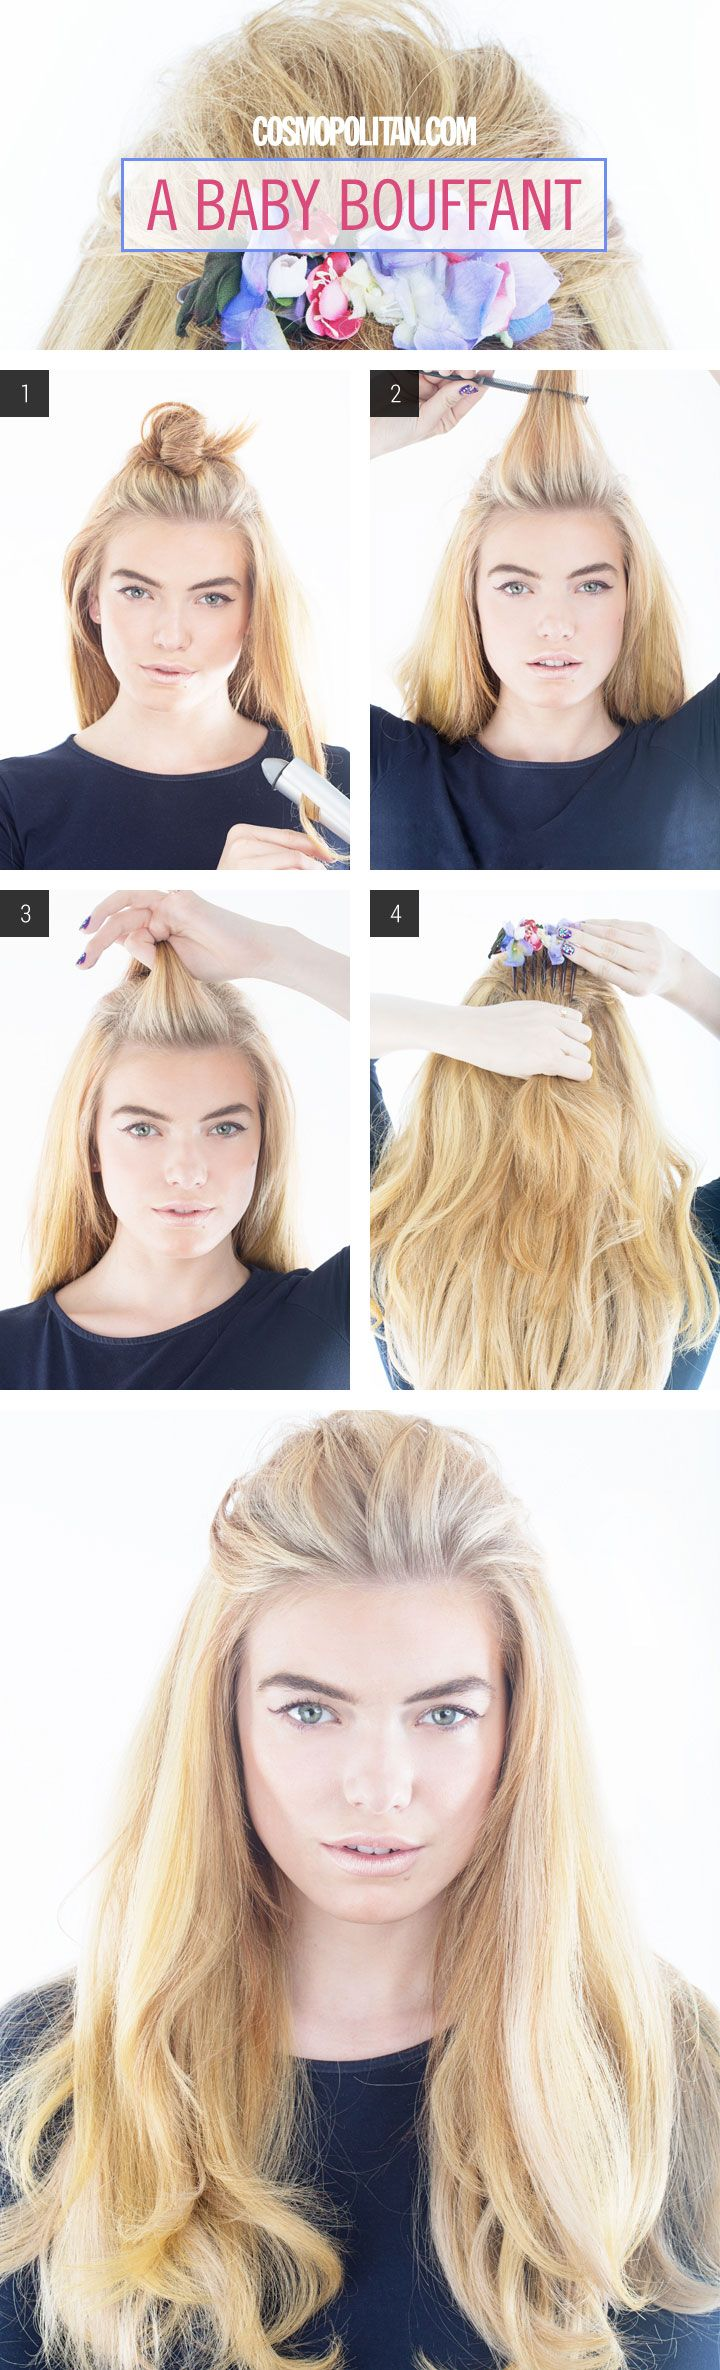 Hair How-To: A Baby Bouffant